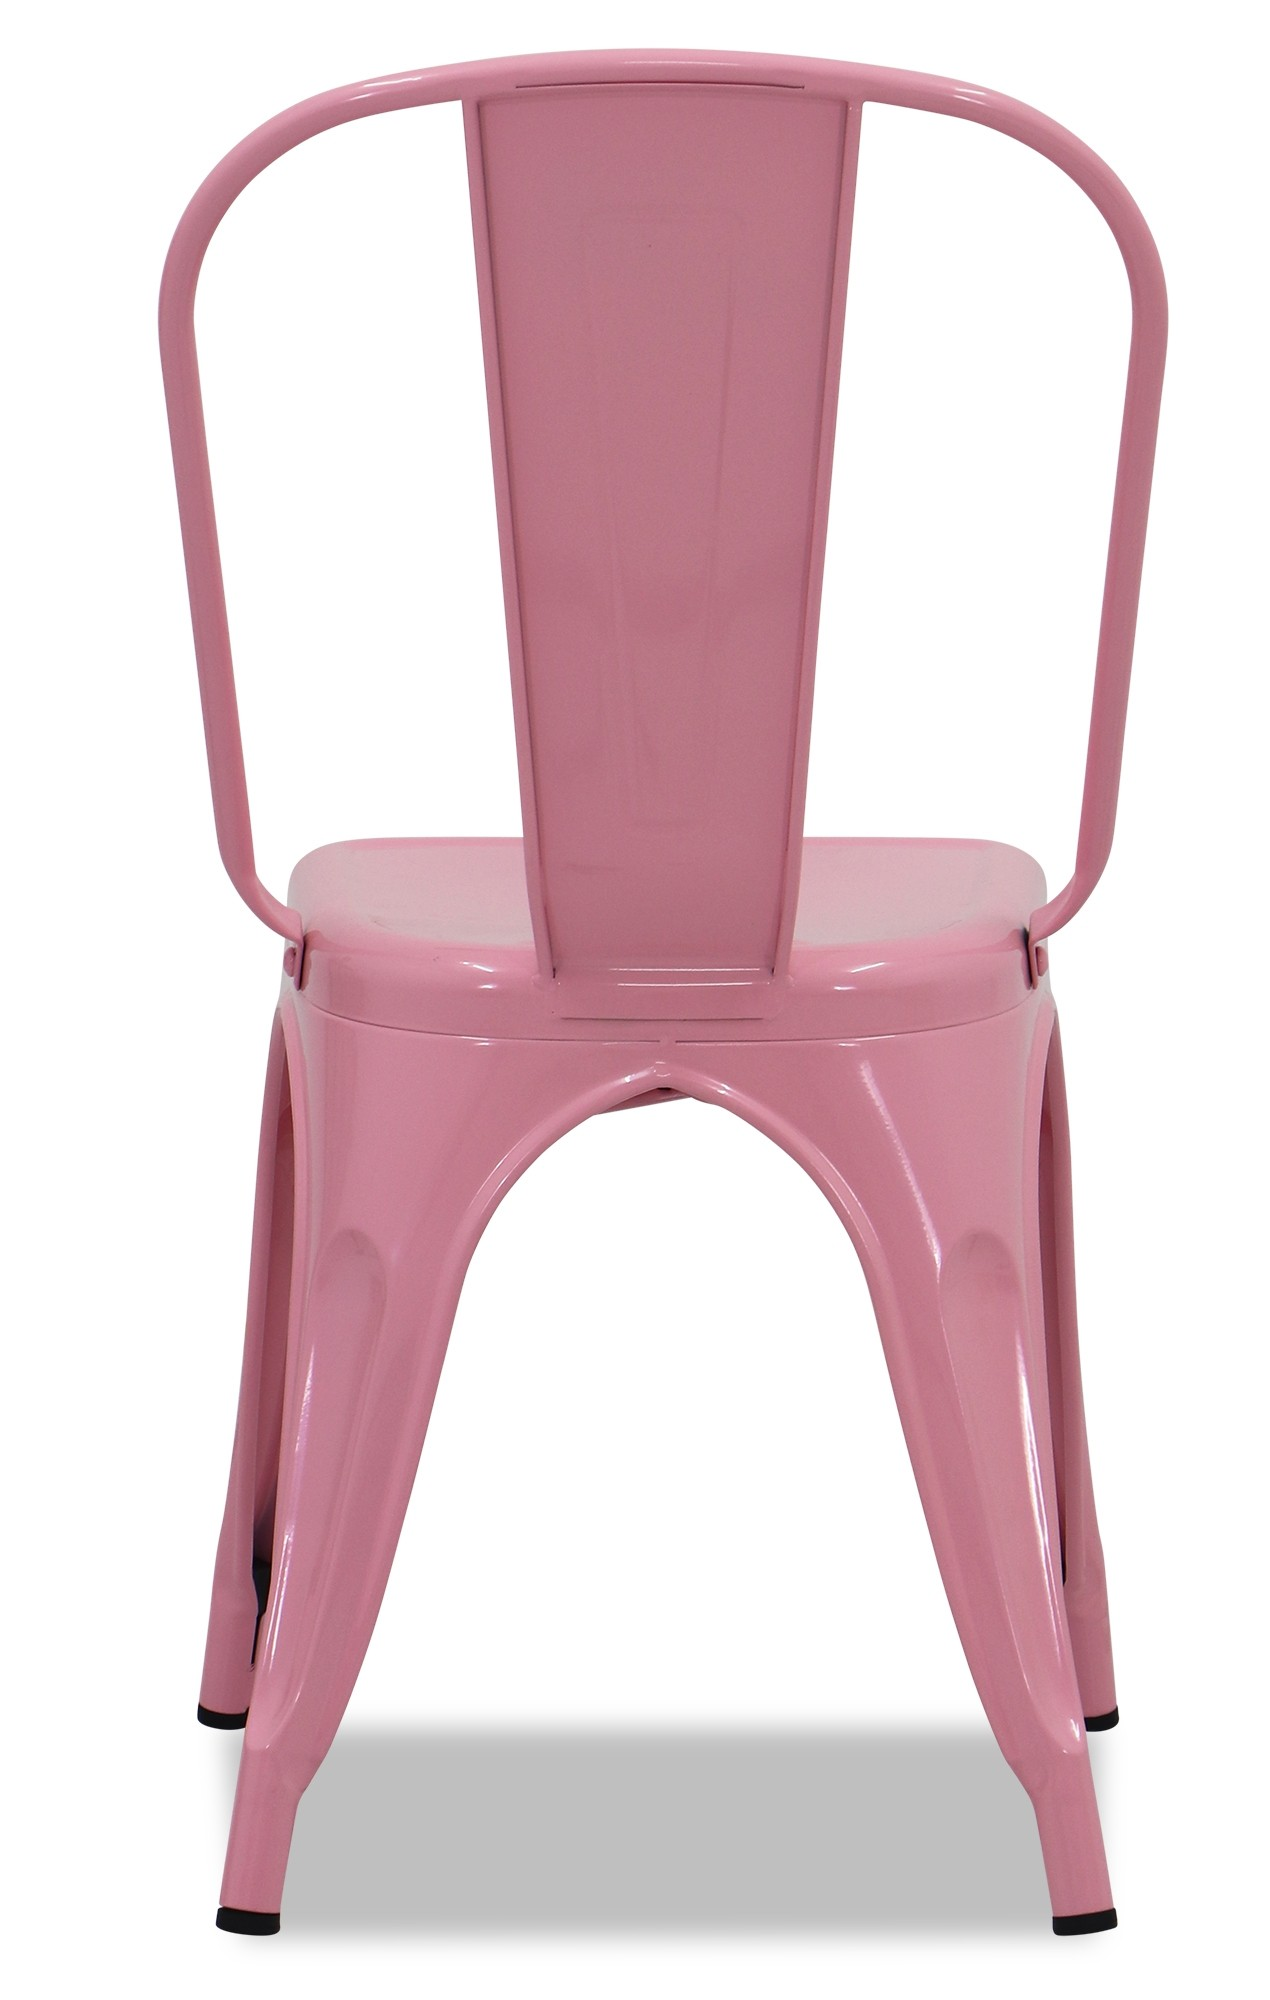 Retro Metal Chair Light Pink  Chairs  Living Room